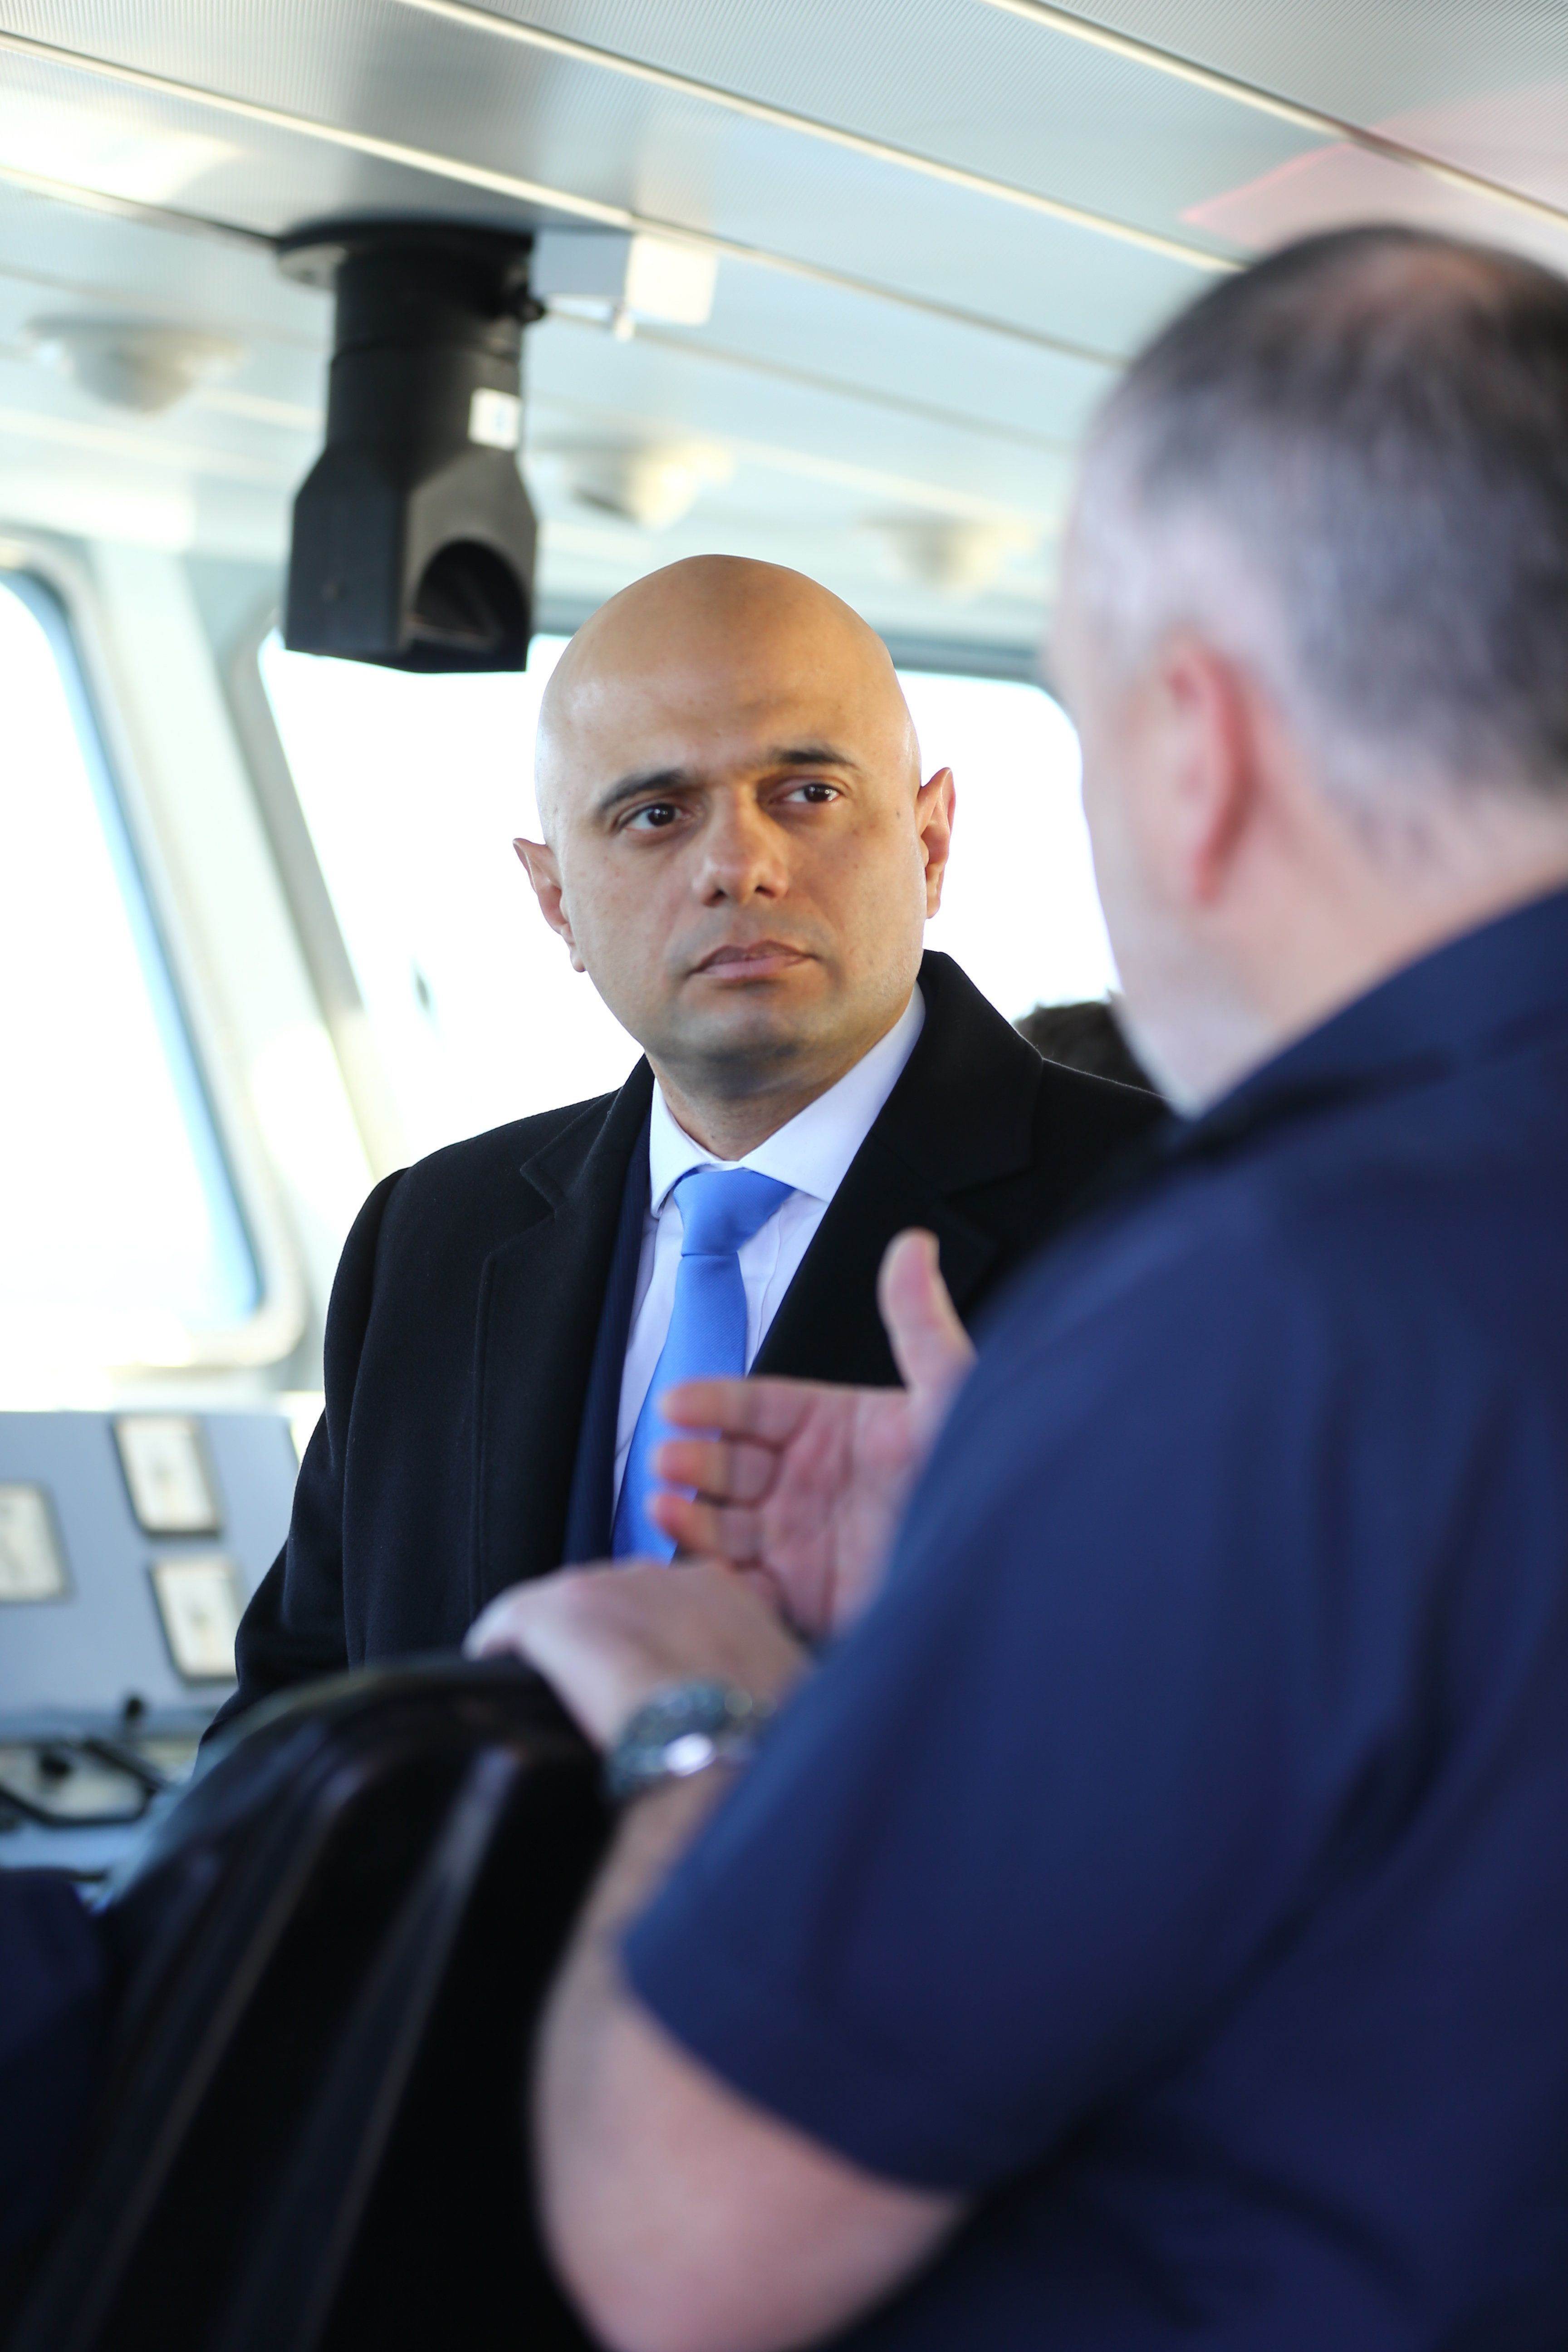 Sajid Javid Faces Backlash For Questioning Whether Cross-Channel Migrants Are 'Genuine' Asylum